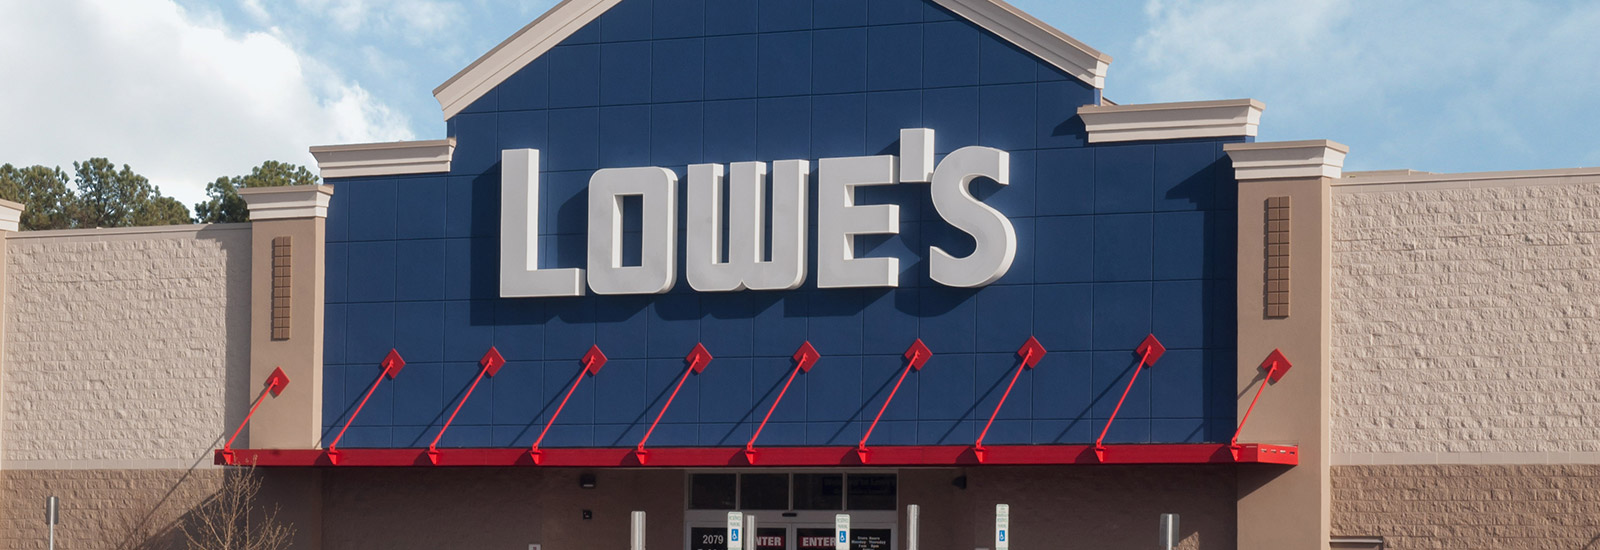 client_lowes1.jpg